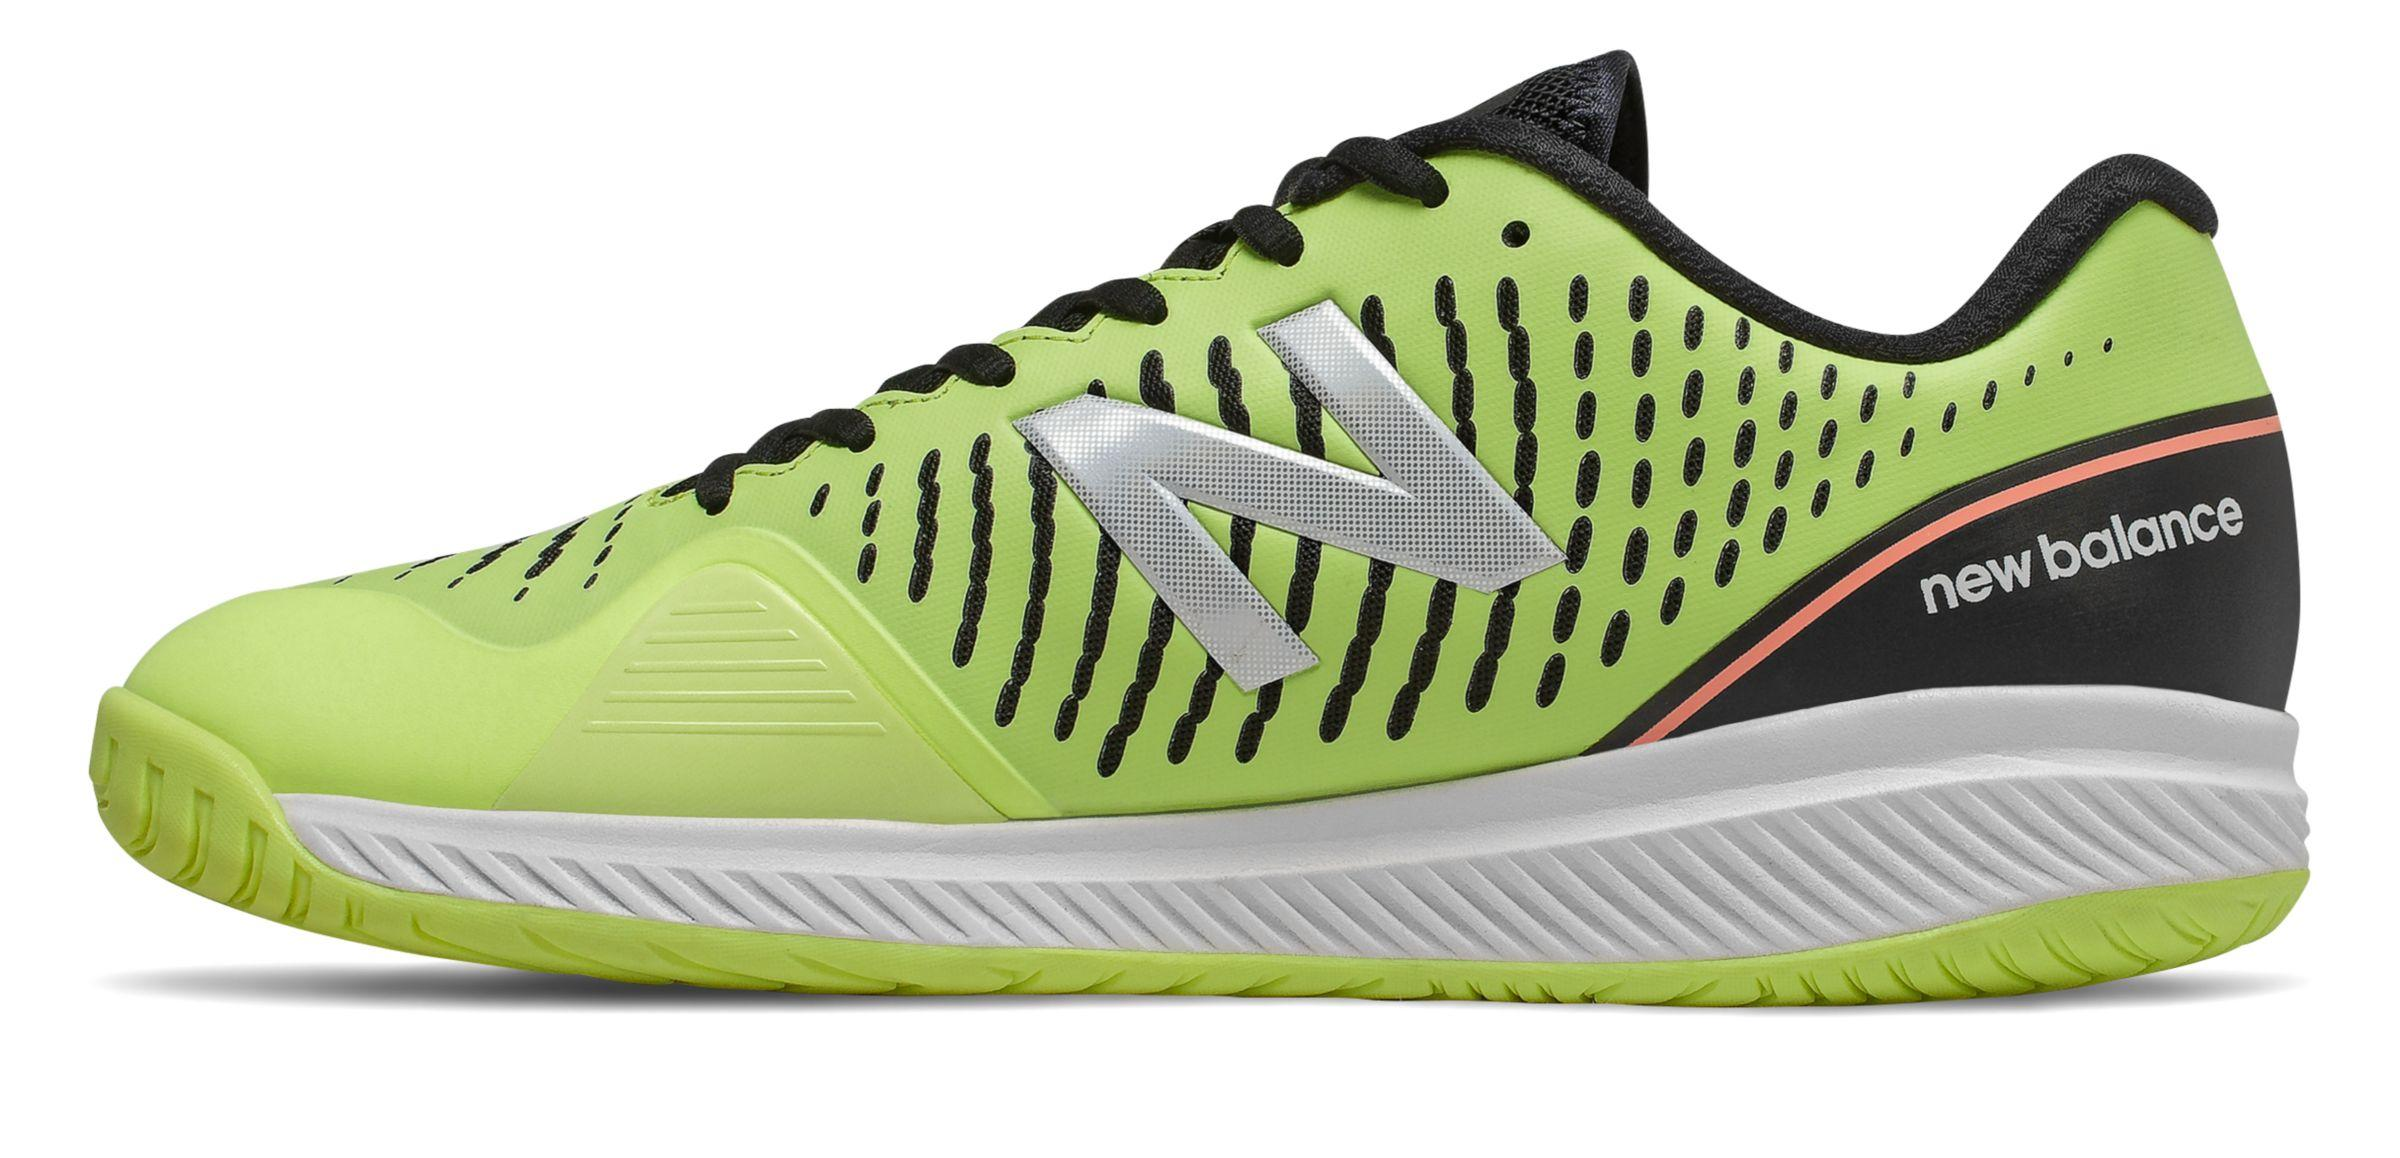 New Balance Synthetic Padel 796v2 Tennis Shoes in Green/Black/Pink ...